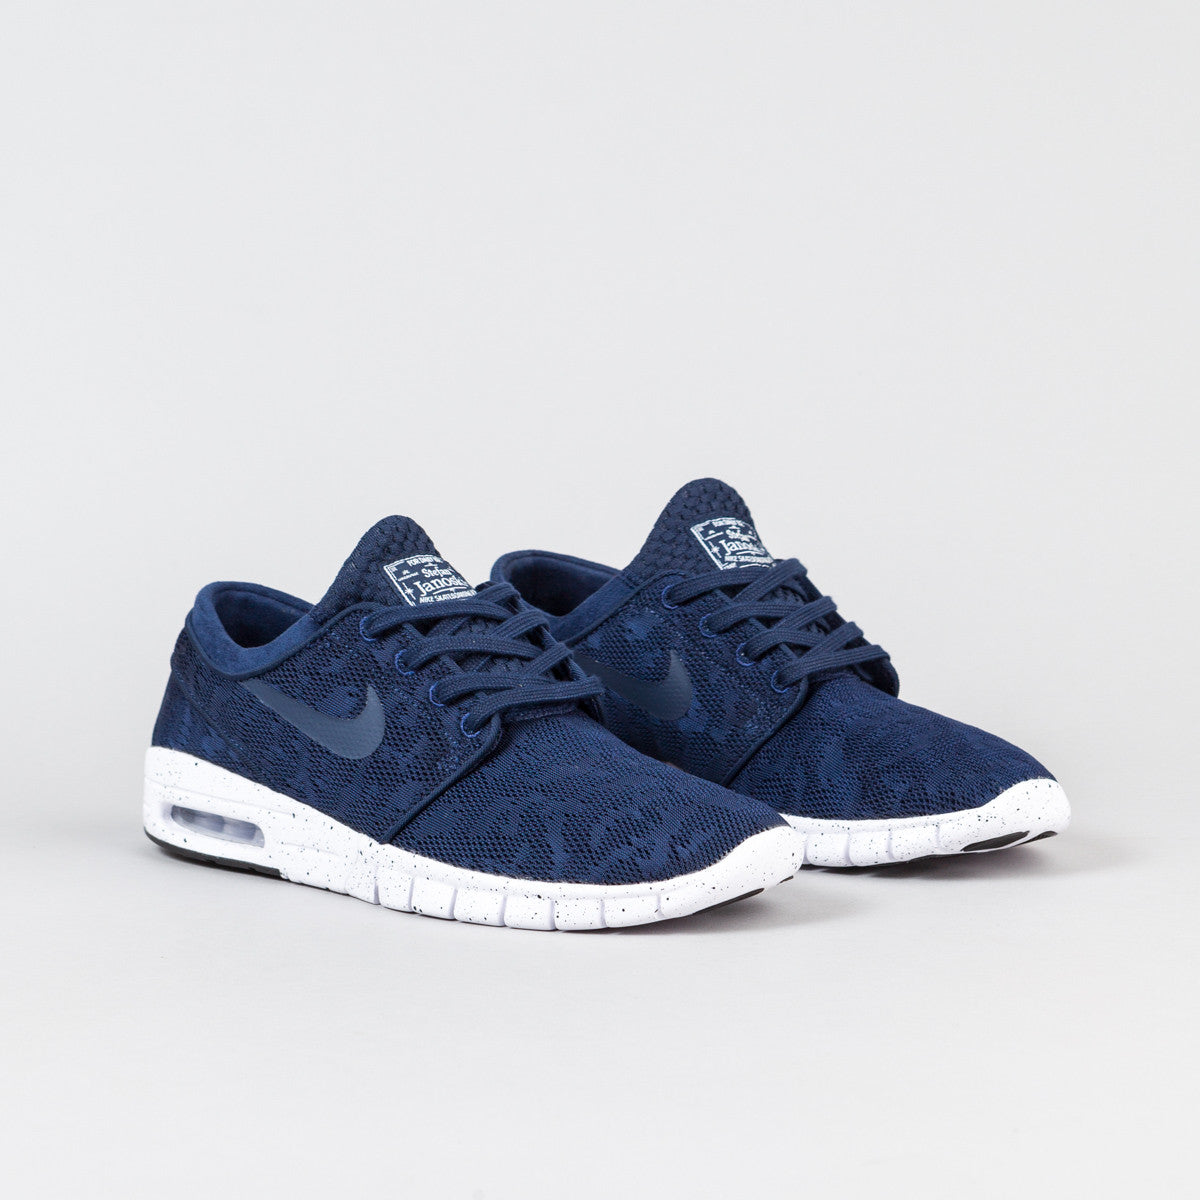 nike sb stefan janoski max midnight navy white flatspot. Black Bedroom Furniture Sets. Home Design Ideas